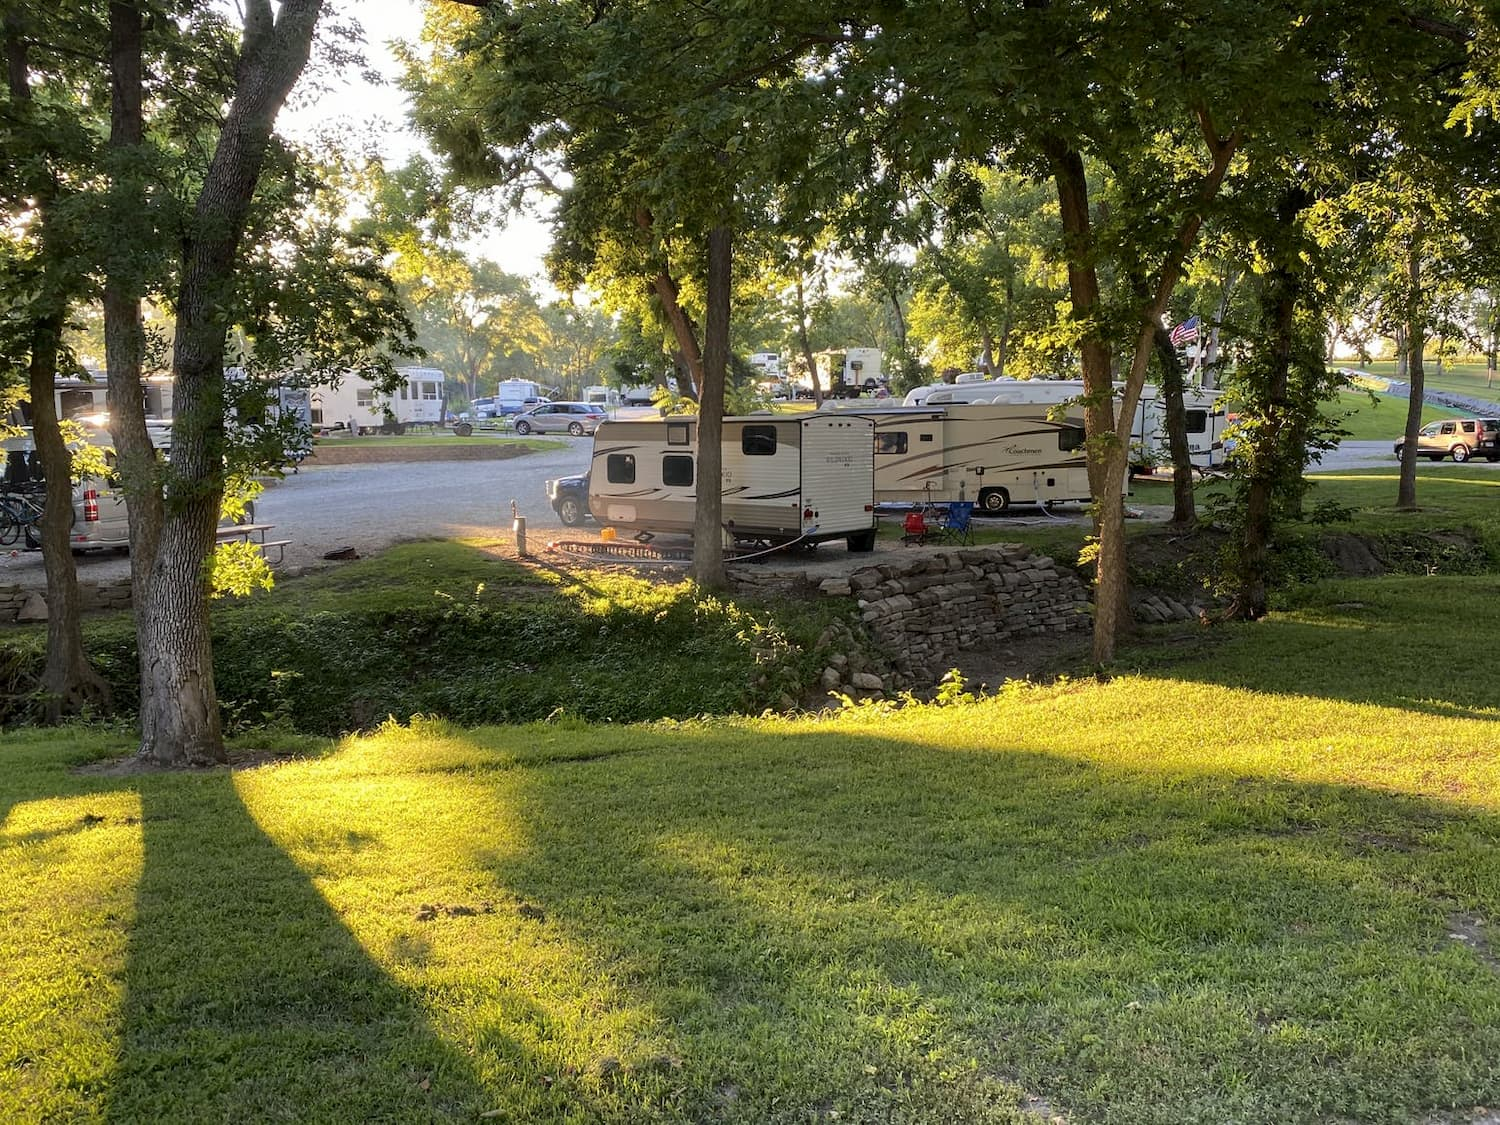 green grass and RVs parked